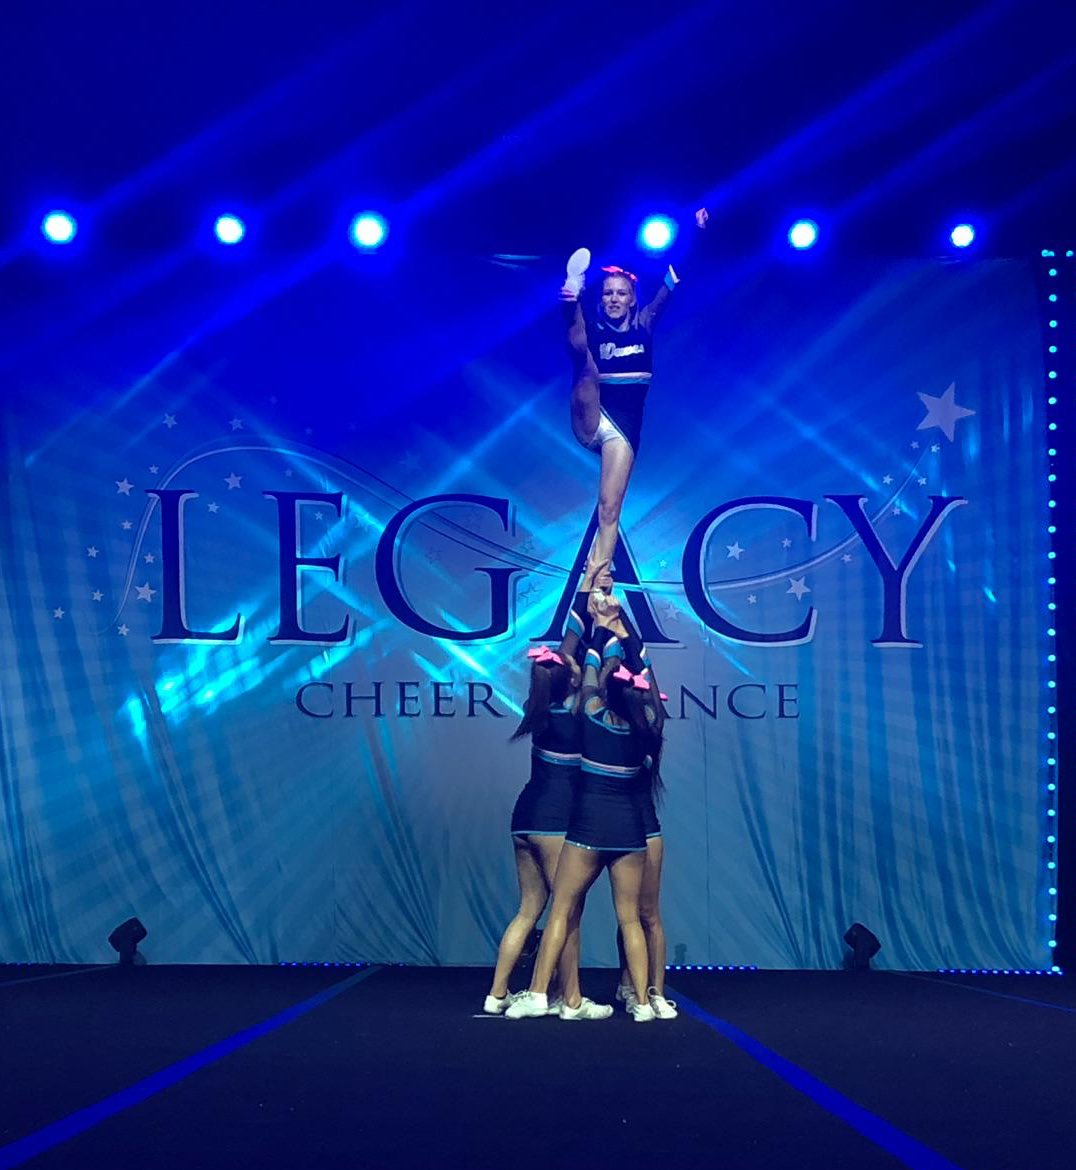 @LegacyCheerUK #DreamExtreme complete! We have had such an amazing season, bring on summer comps  Tsunami (Level 3 Stunt Group): 1st Riptide (Level 4 Stunt Group): 1st Atlantis (Level 2 Coed): 1st  Odyssey (Level 2 All Girl): 2nd  <br>http://pic.twitter.com/ovOV9ZmxO9